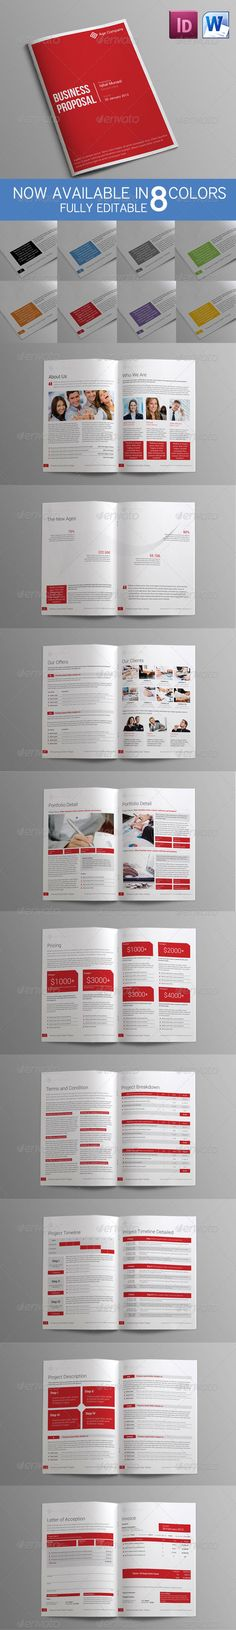 Professional Proposal Template Adobe photoshop, Fonts and Stationery - microsoft word proposal template free download